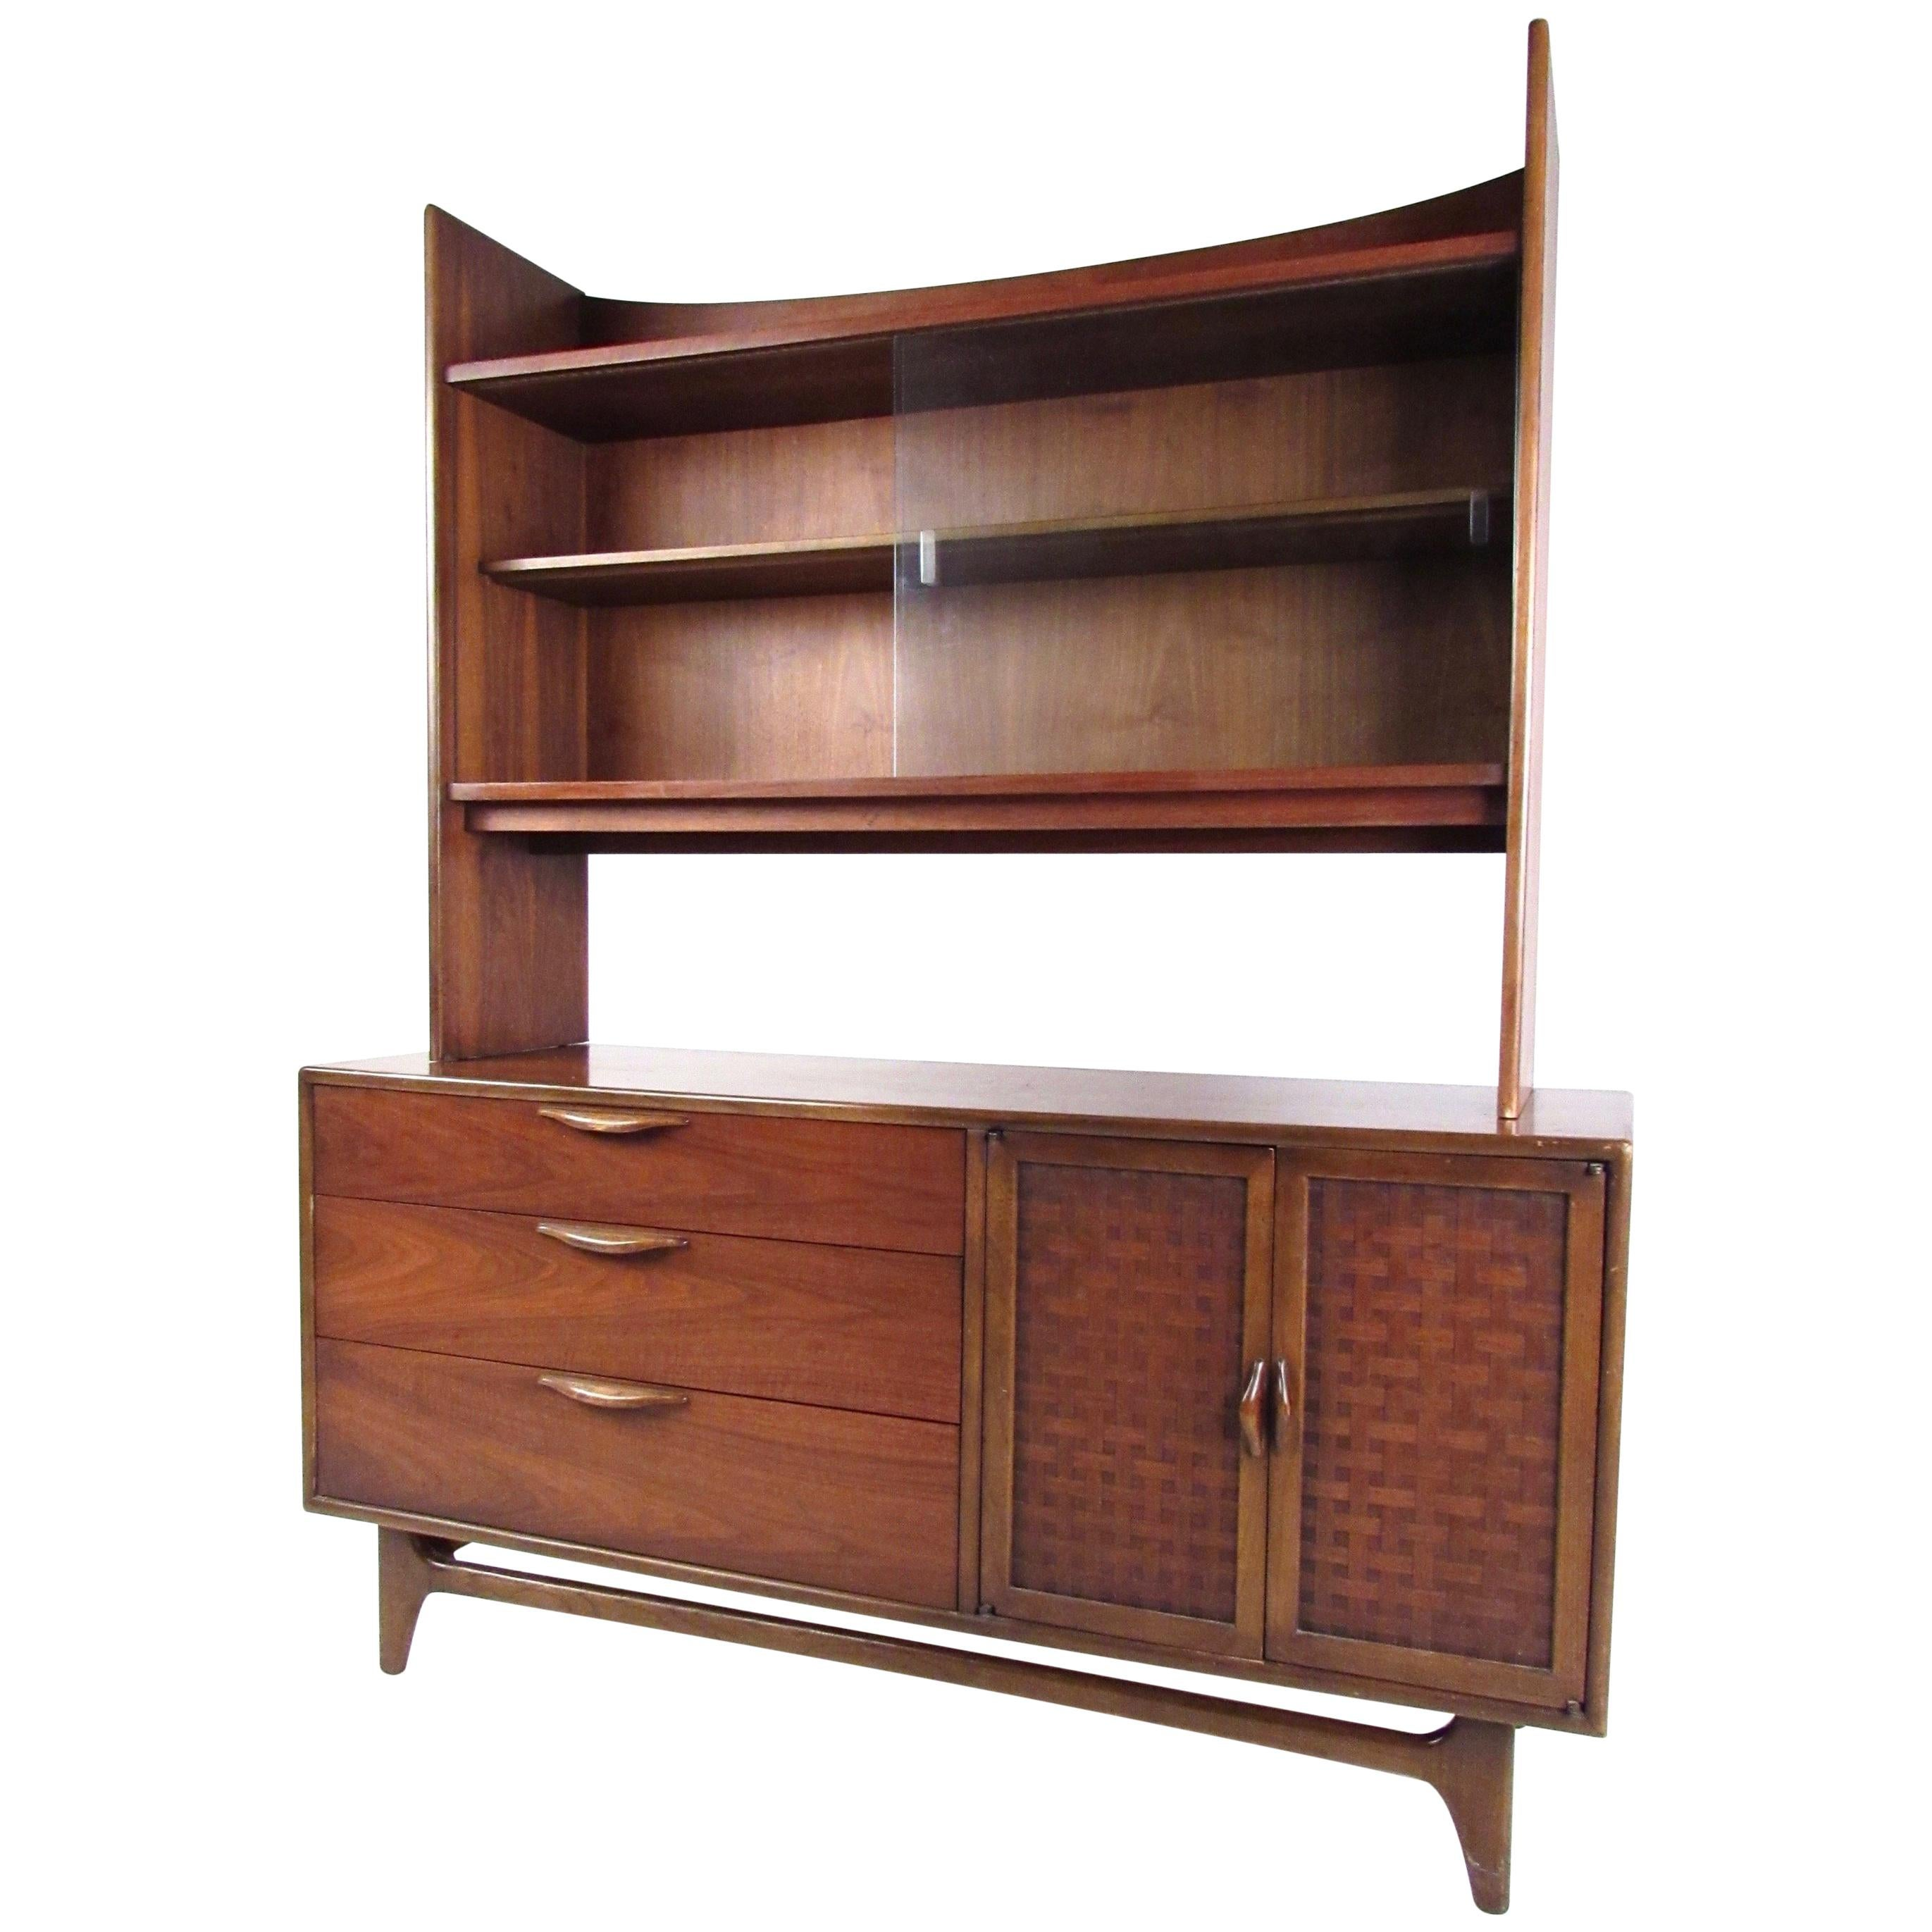 Impressive Two-Piece Sideboard with Display Shelf by Lane